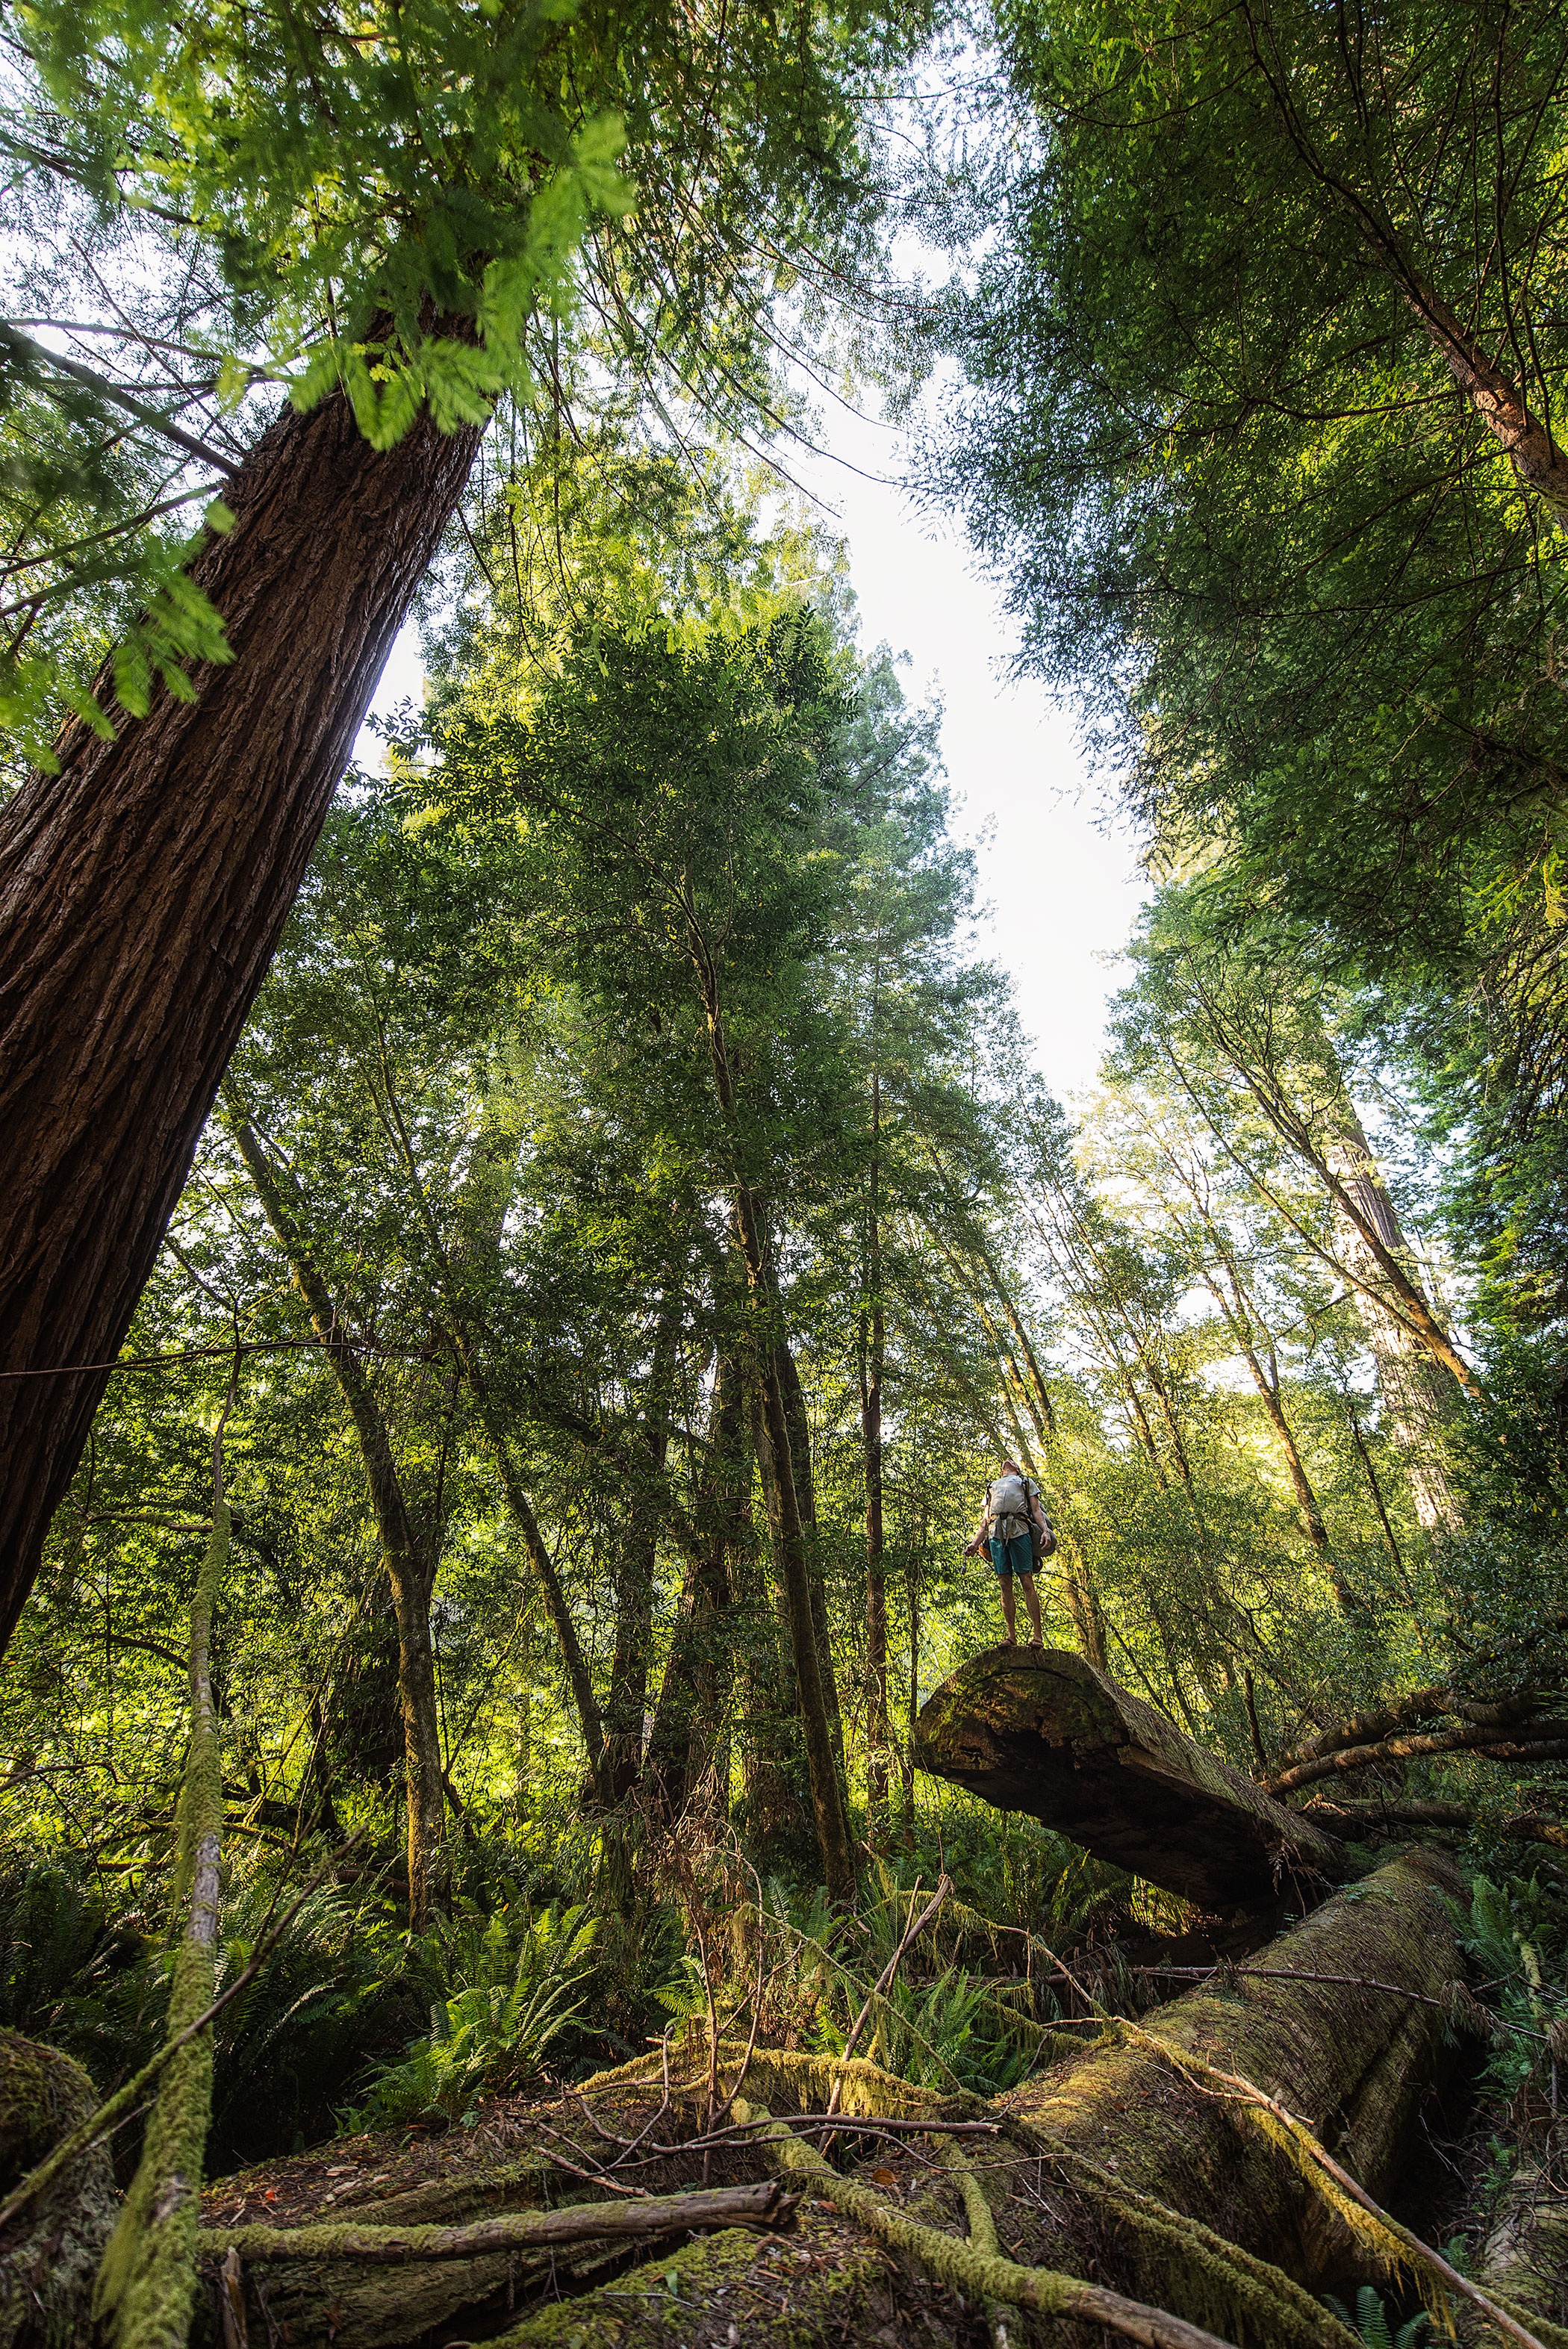 austin-trigg-redwood-water-bottle-california-tall-trees-grove-hiking-camping-adventure.jpg